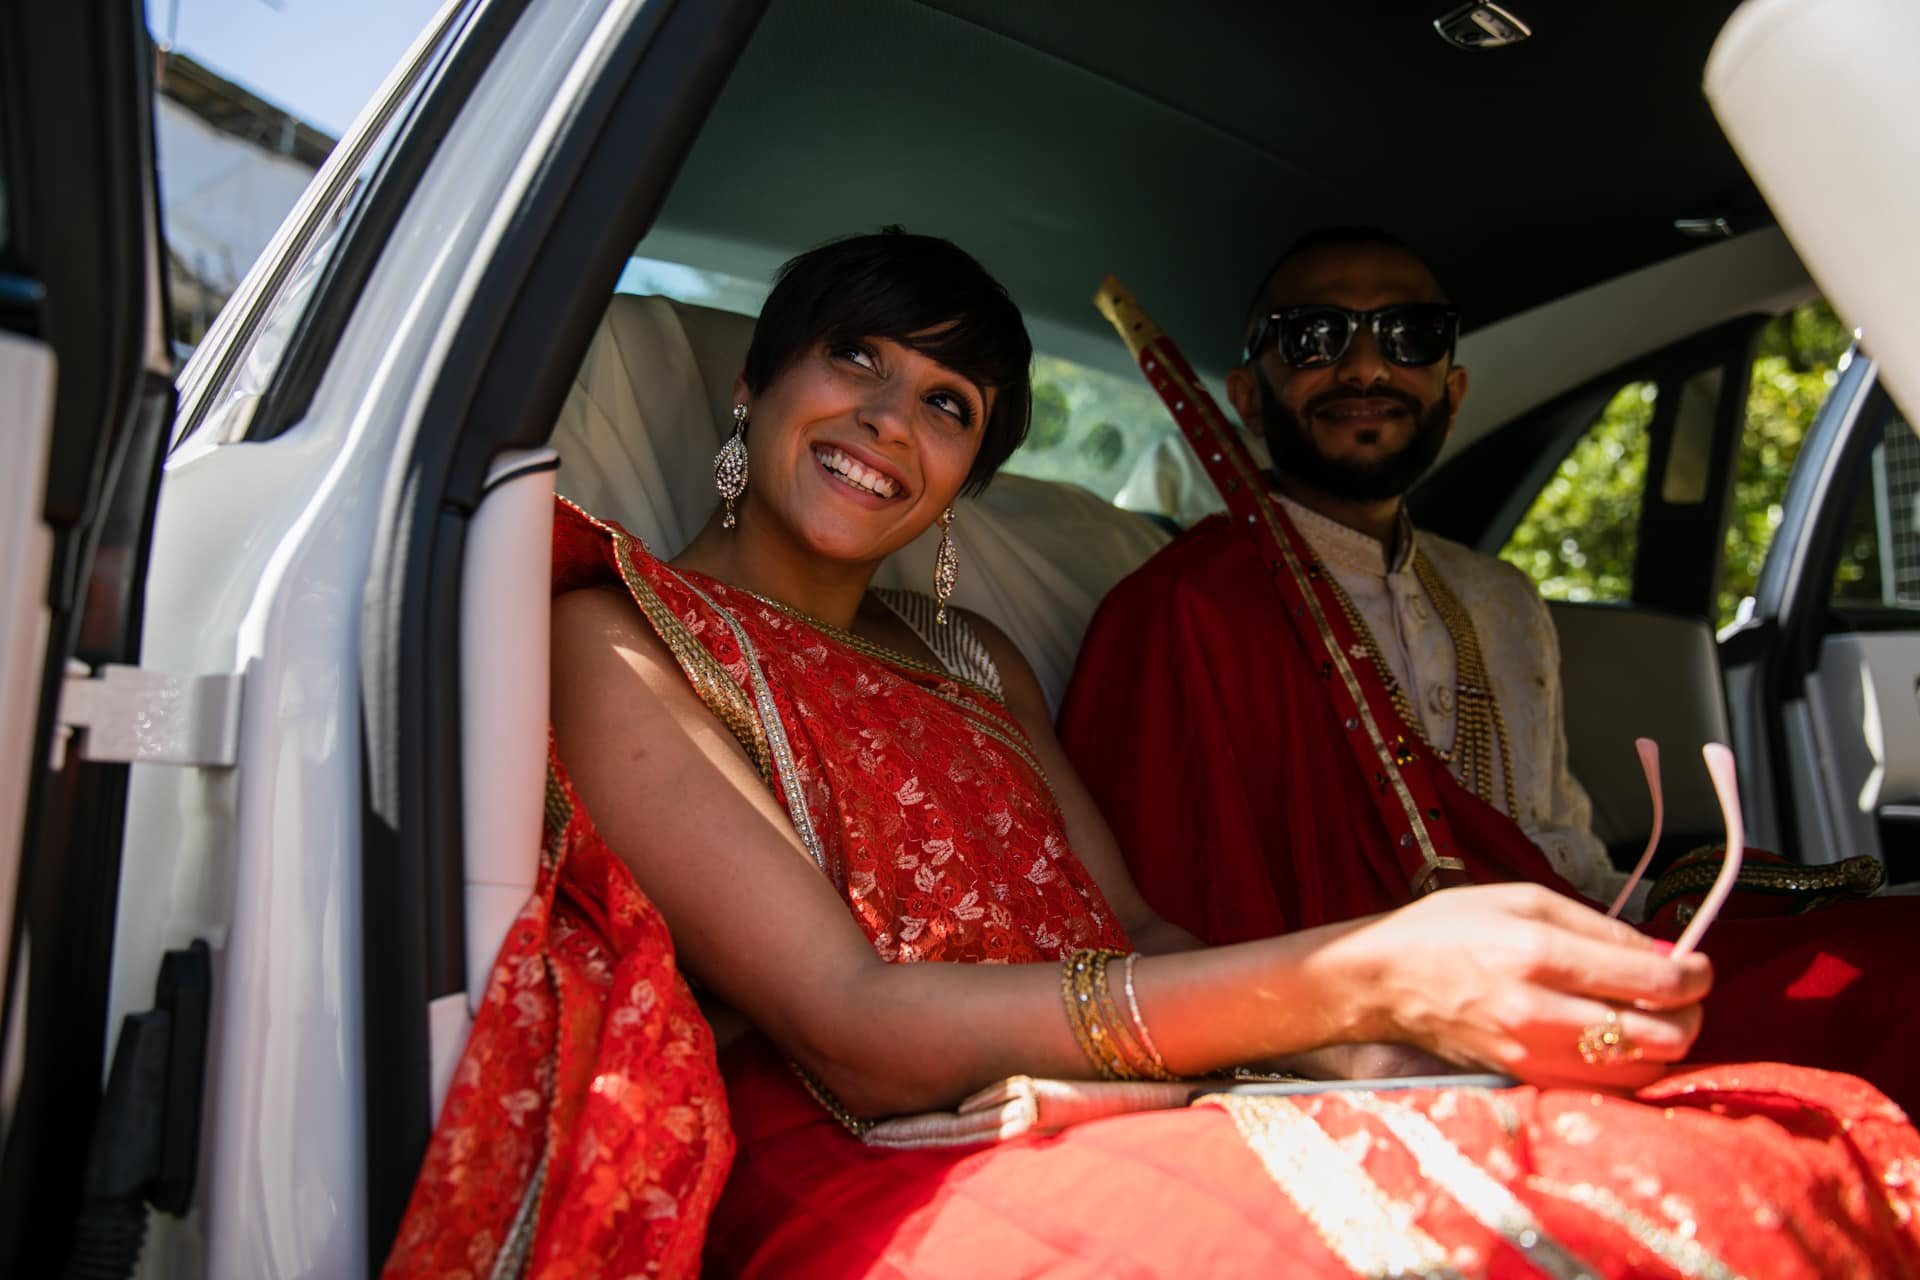 Groom inside wedding car